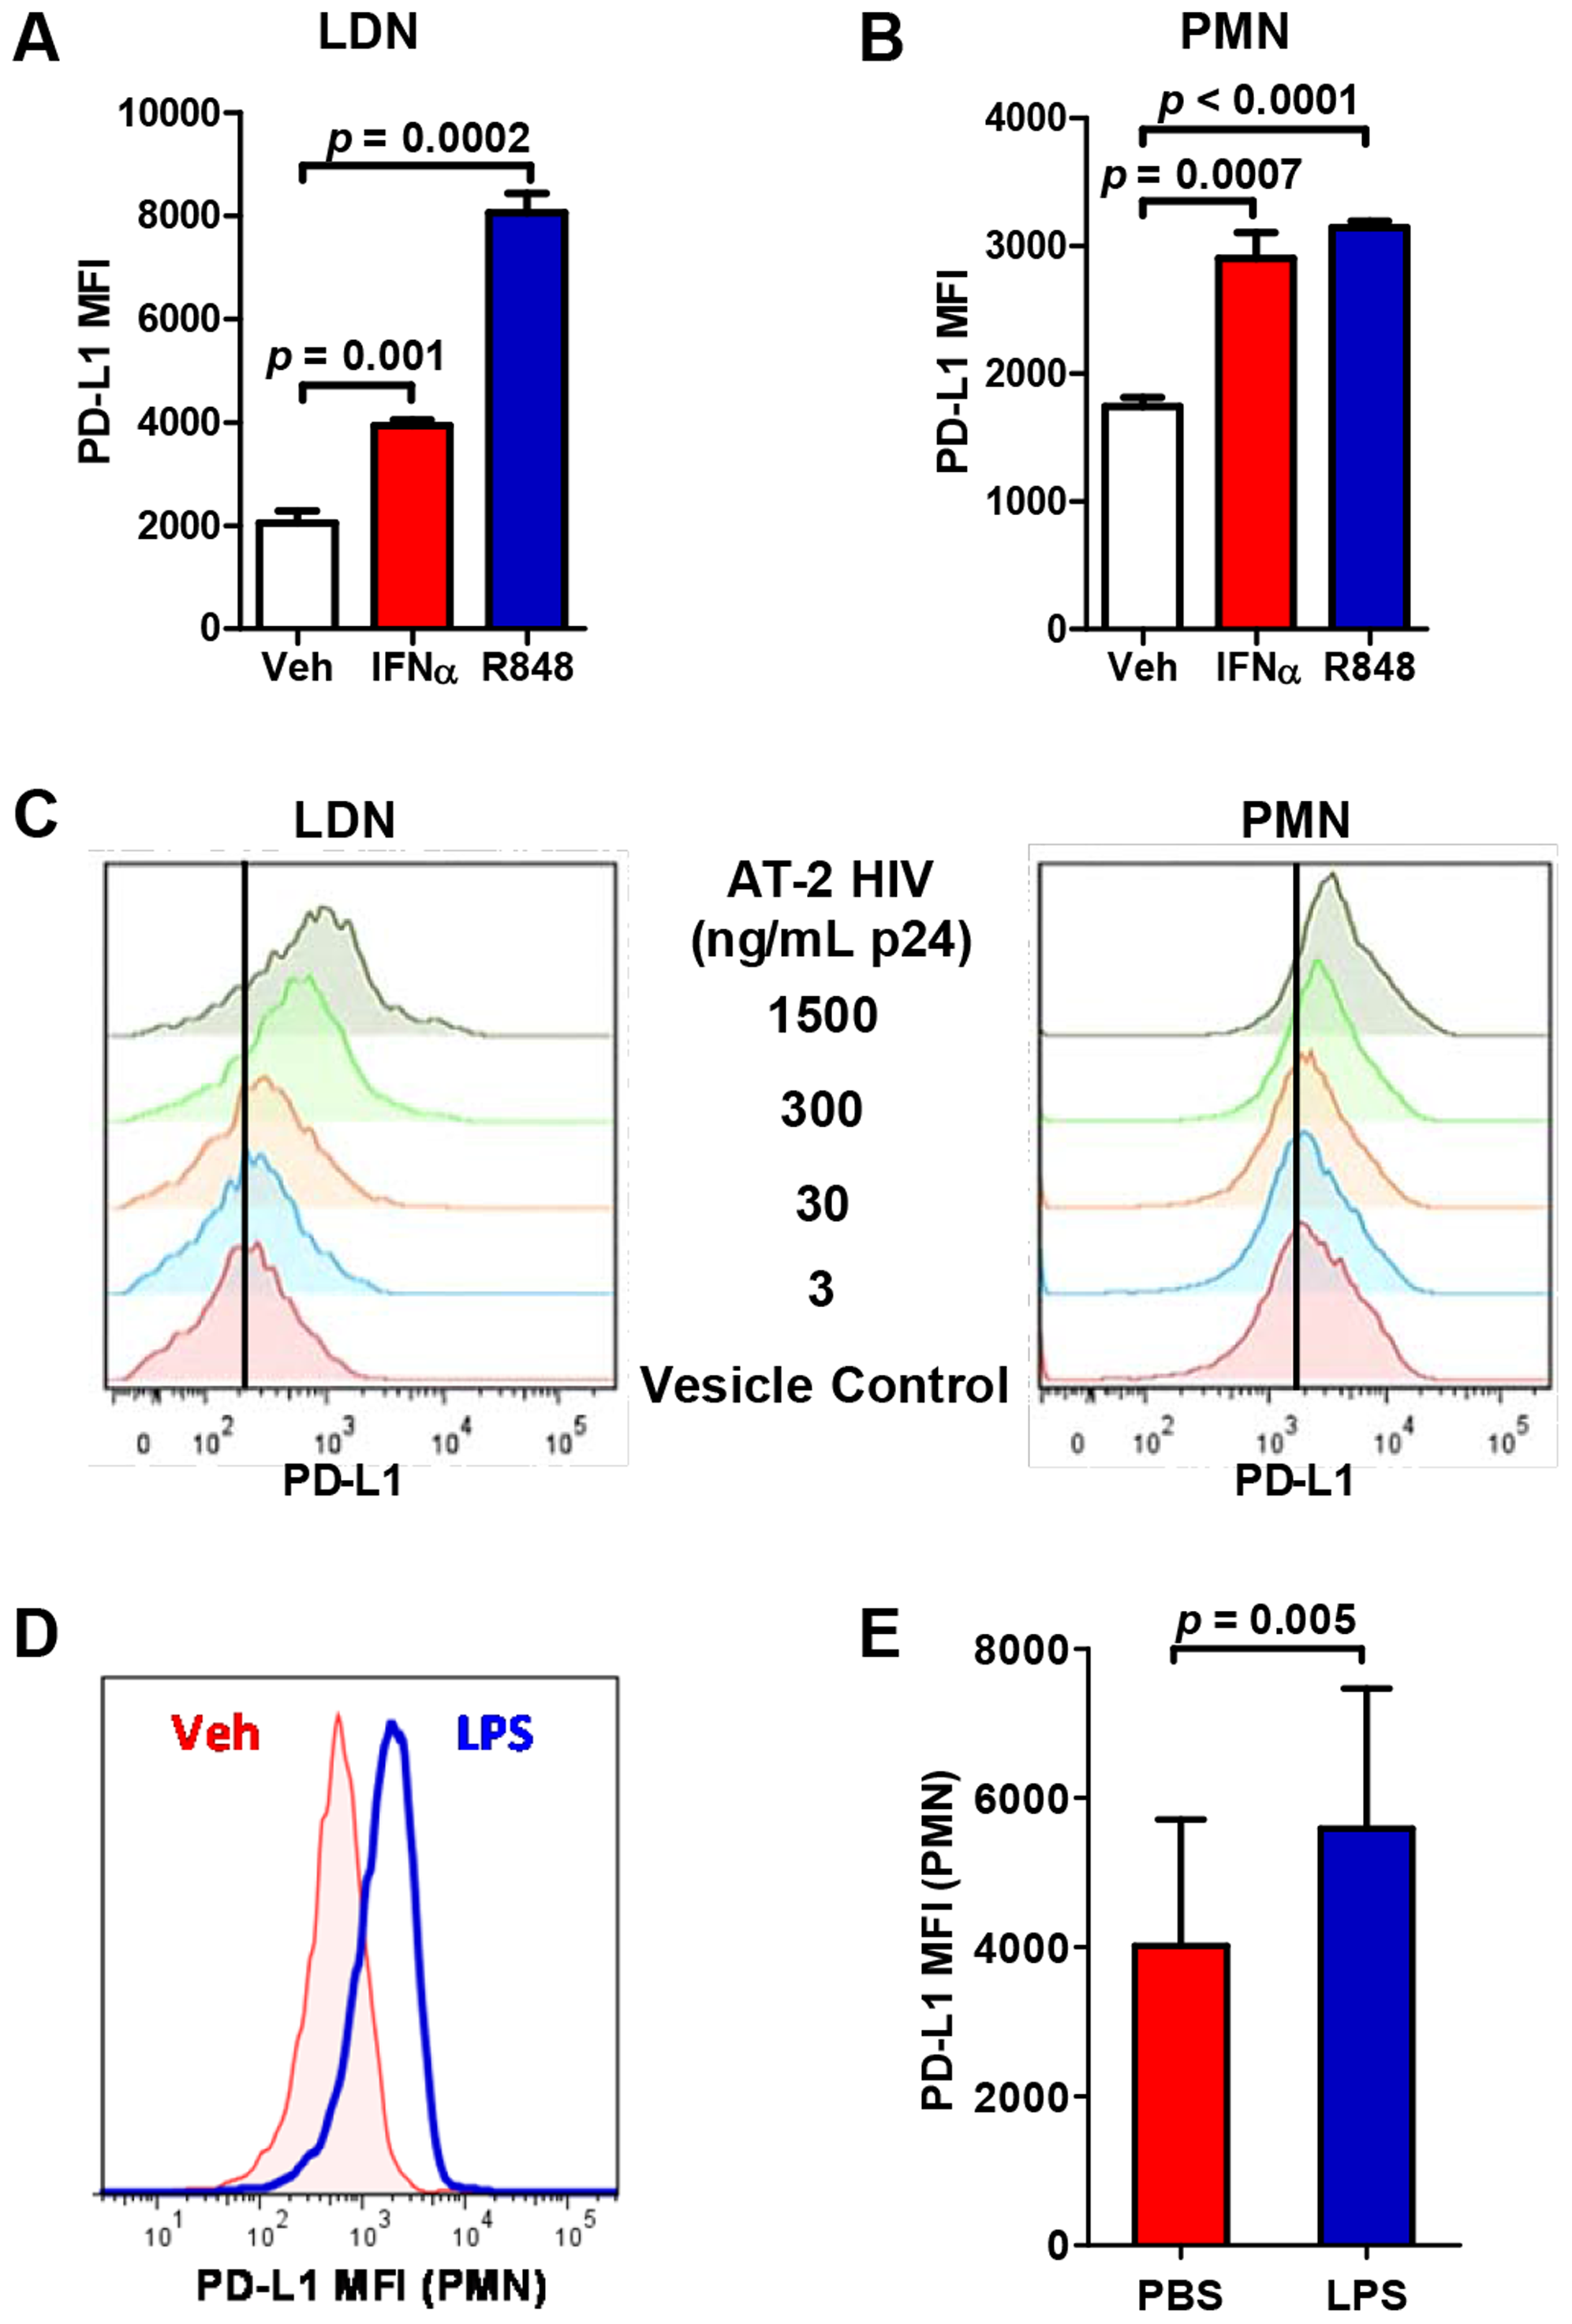 PD-L1 expression on neutrophils is induced by HIV-1 virions, IFNα, TLR-7 ligand R848, and LPS.